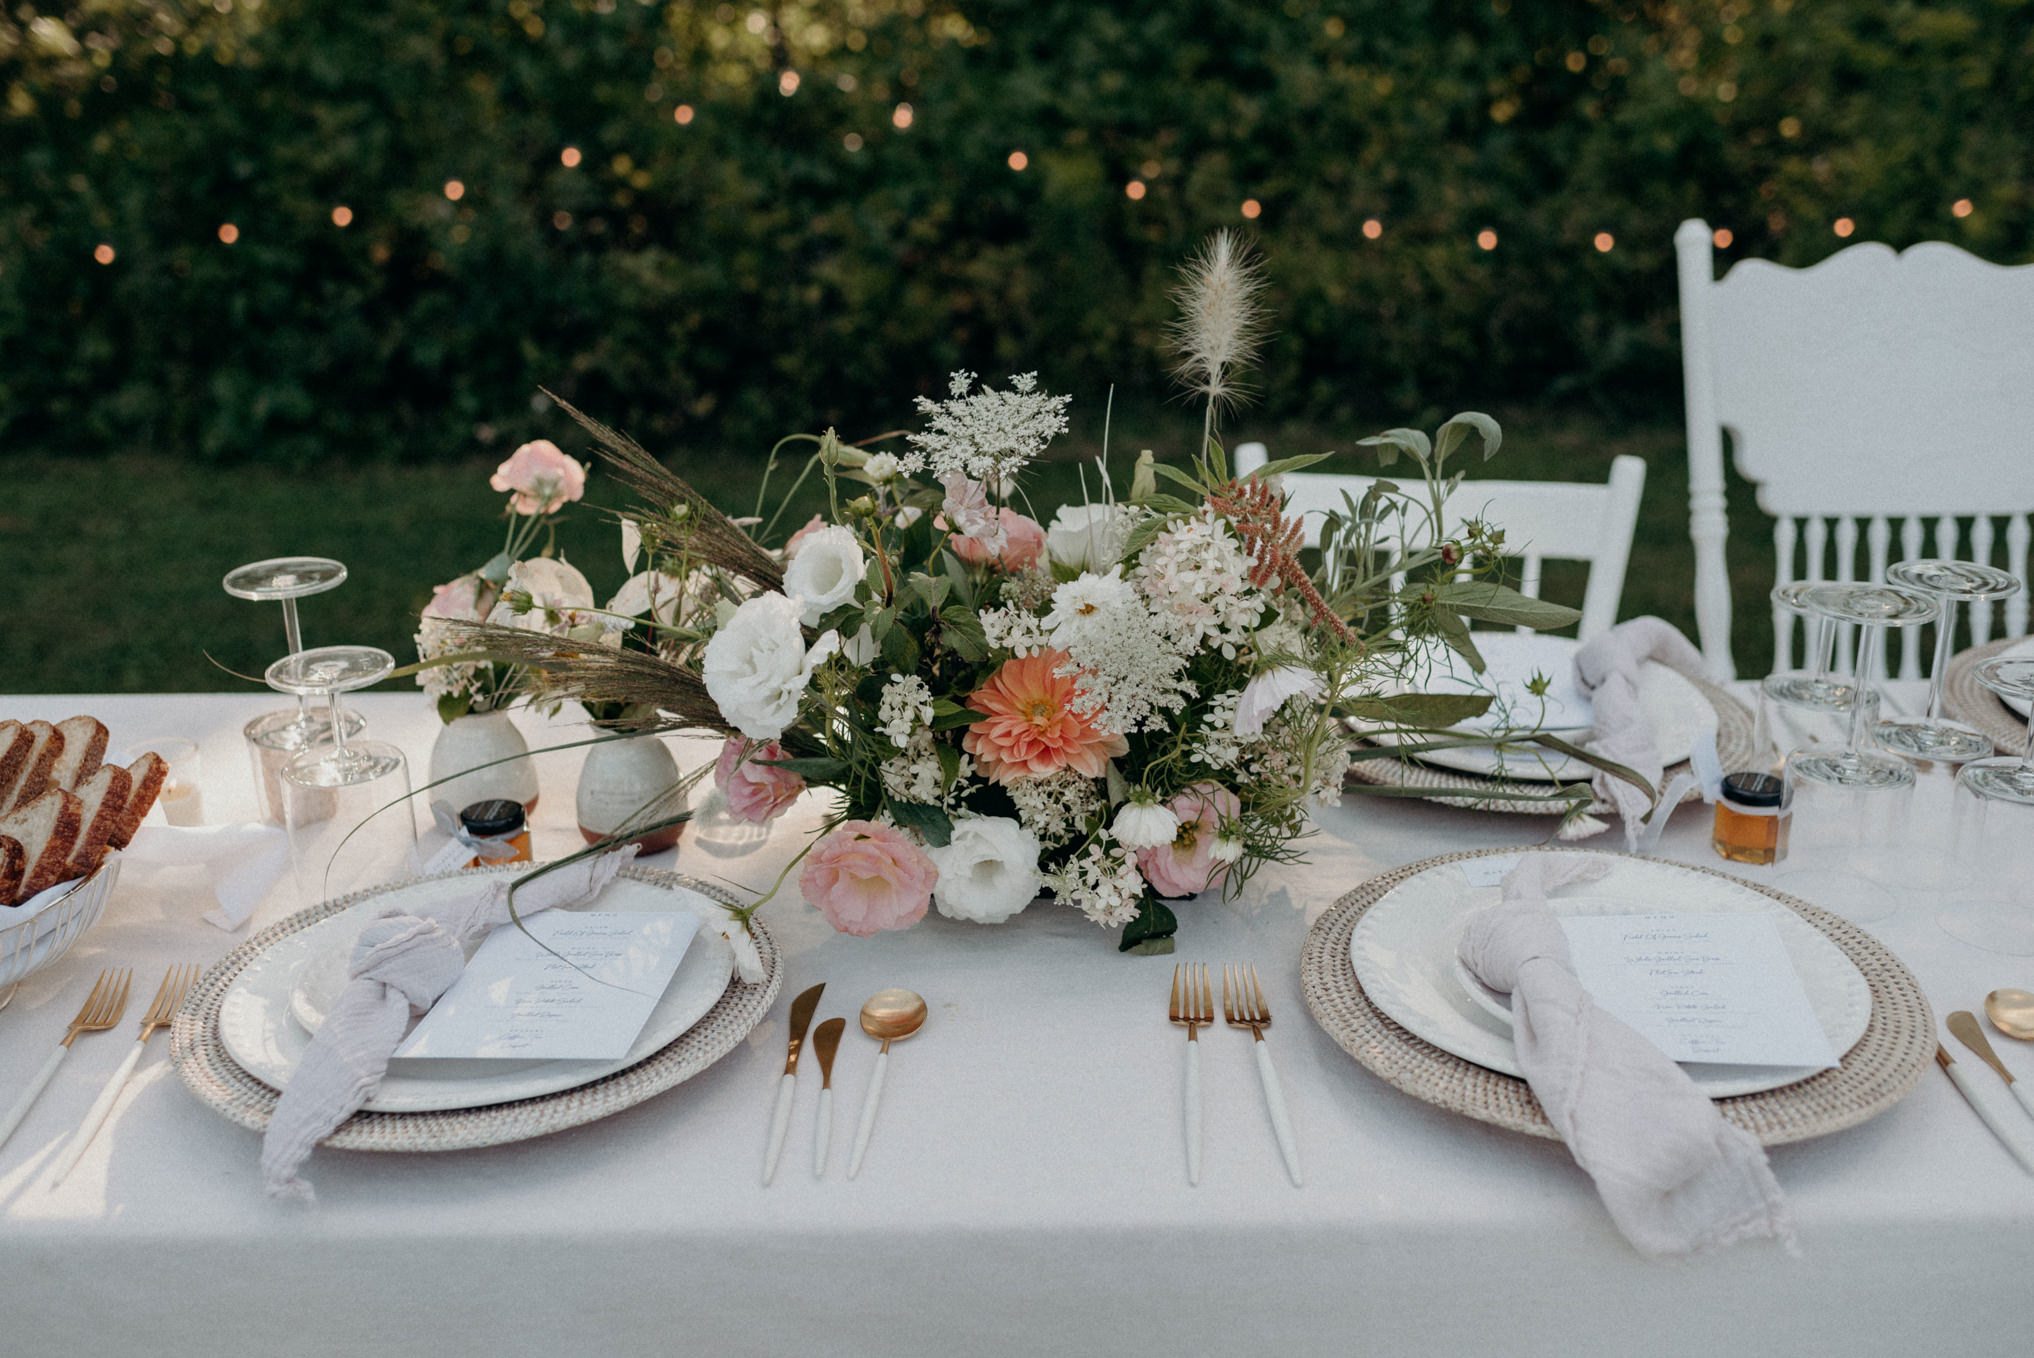 outdoor wedding reception table setting with flower centre piece and string lights